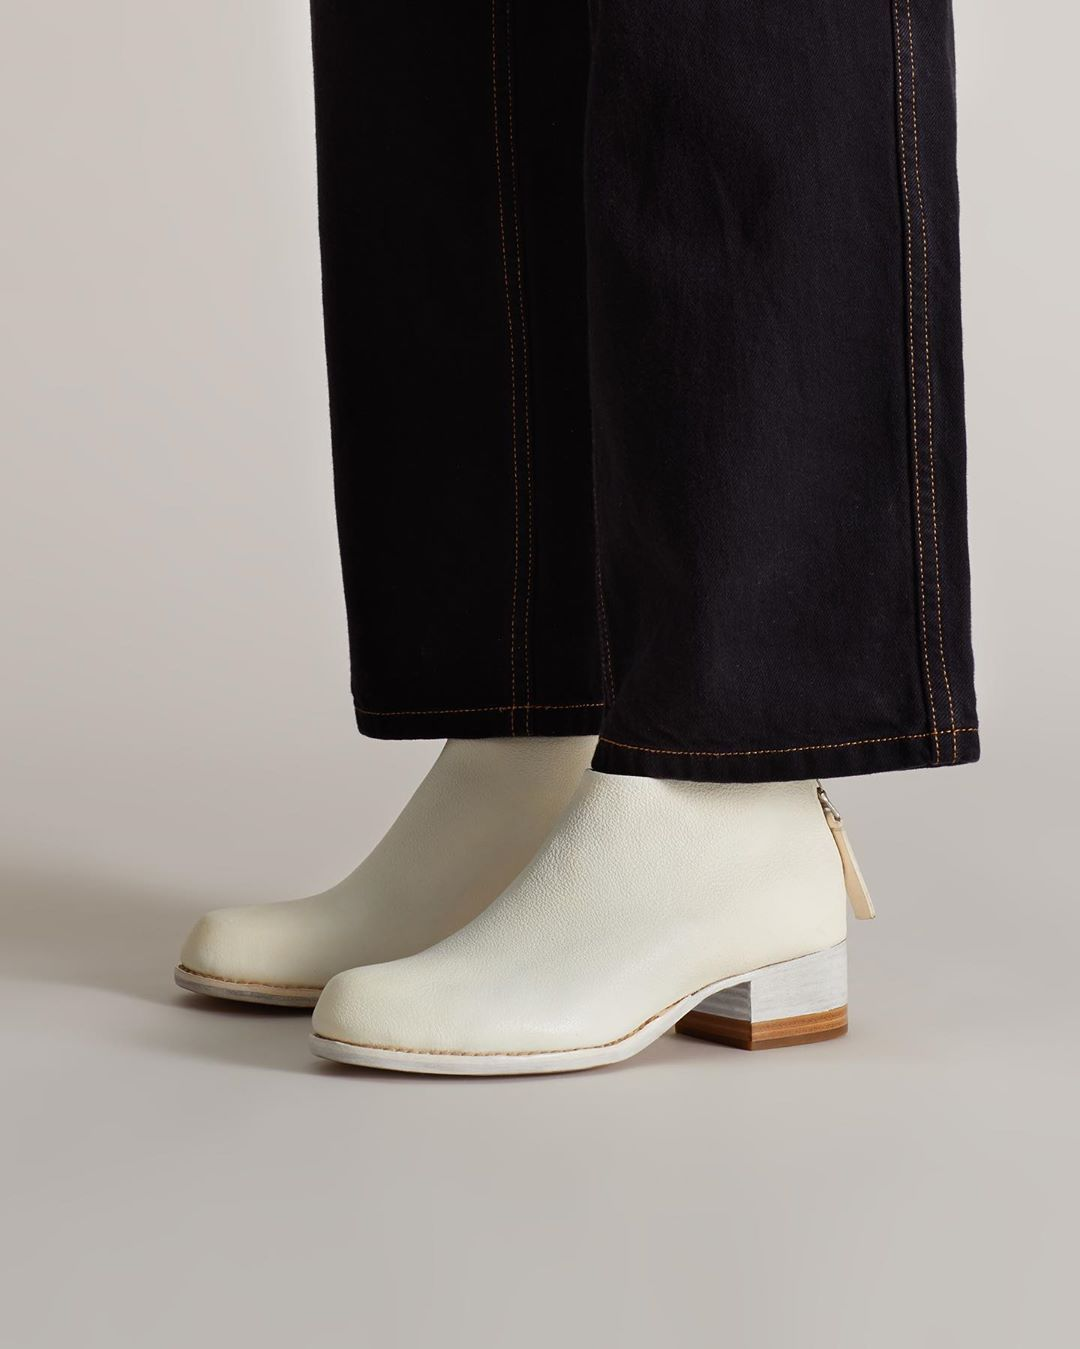 Feit Na Instagramie New Release Mid Heel Boot Limited Edition Of 84 Pairs Available In Store And Online Boots Heeled Boots Mid Heel Boots